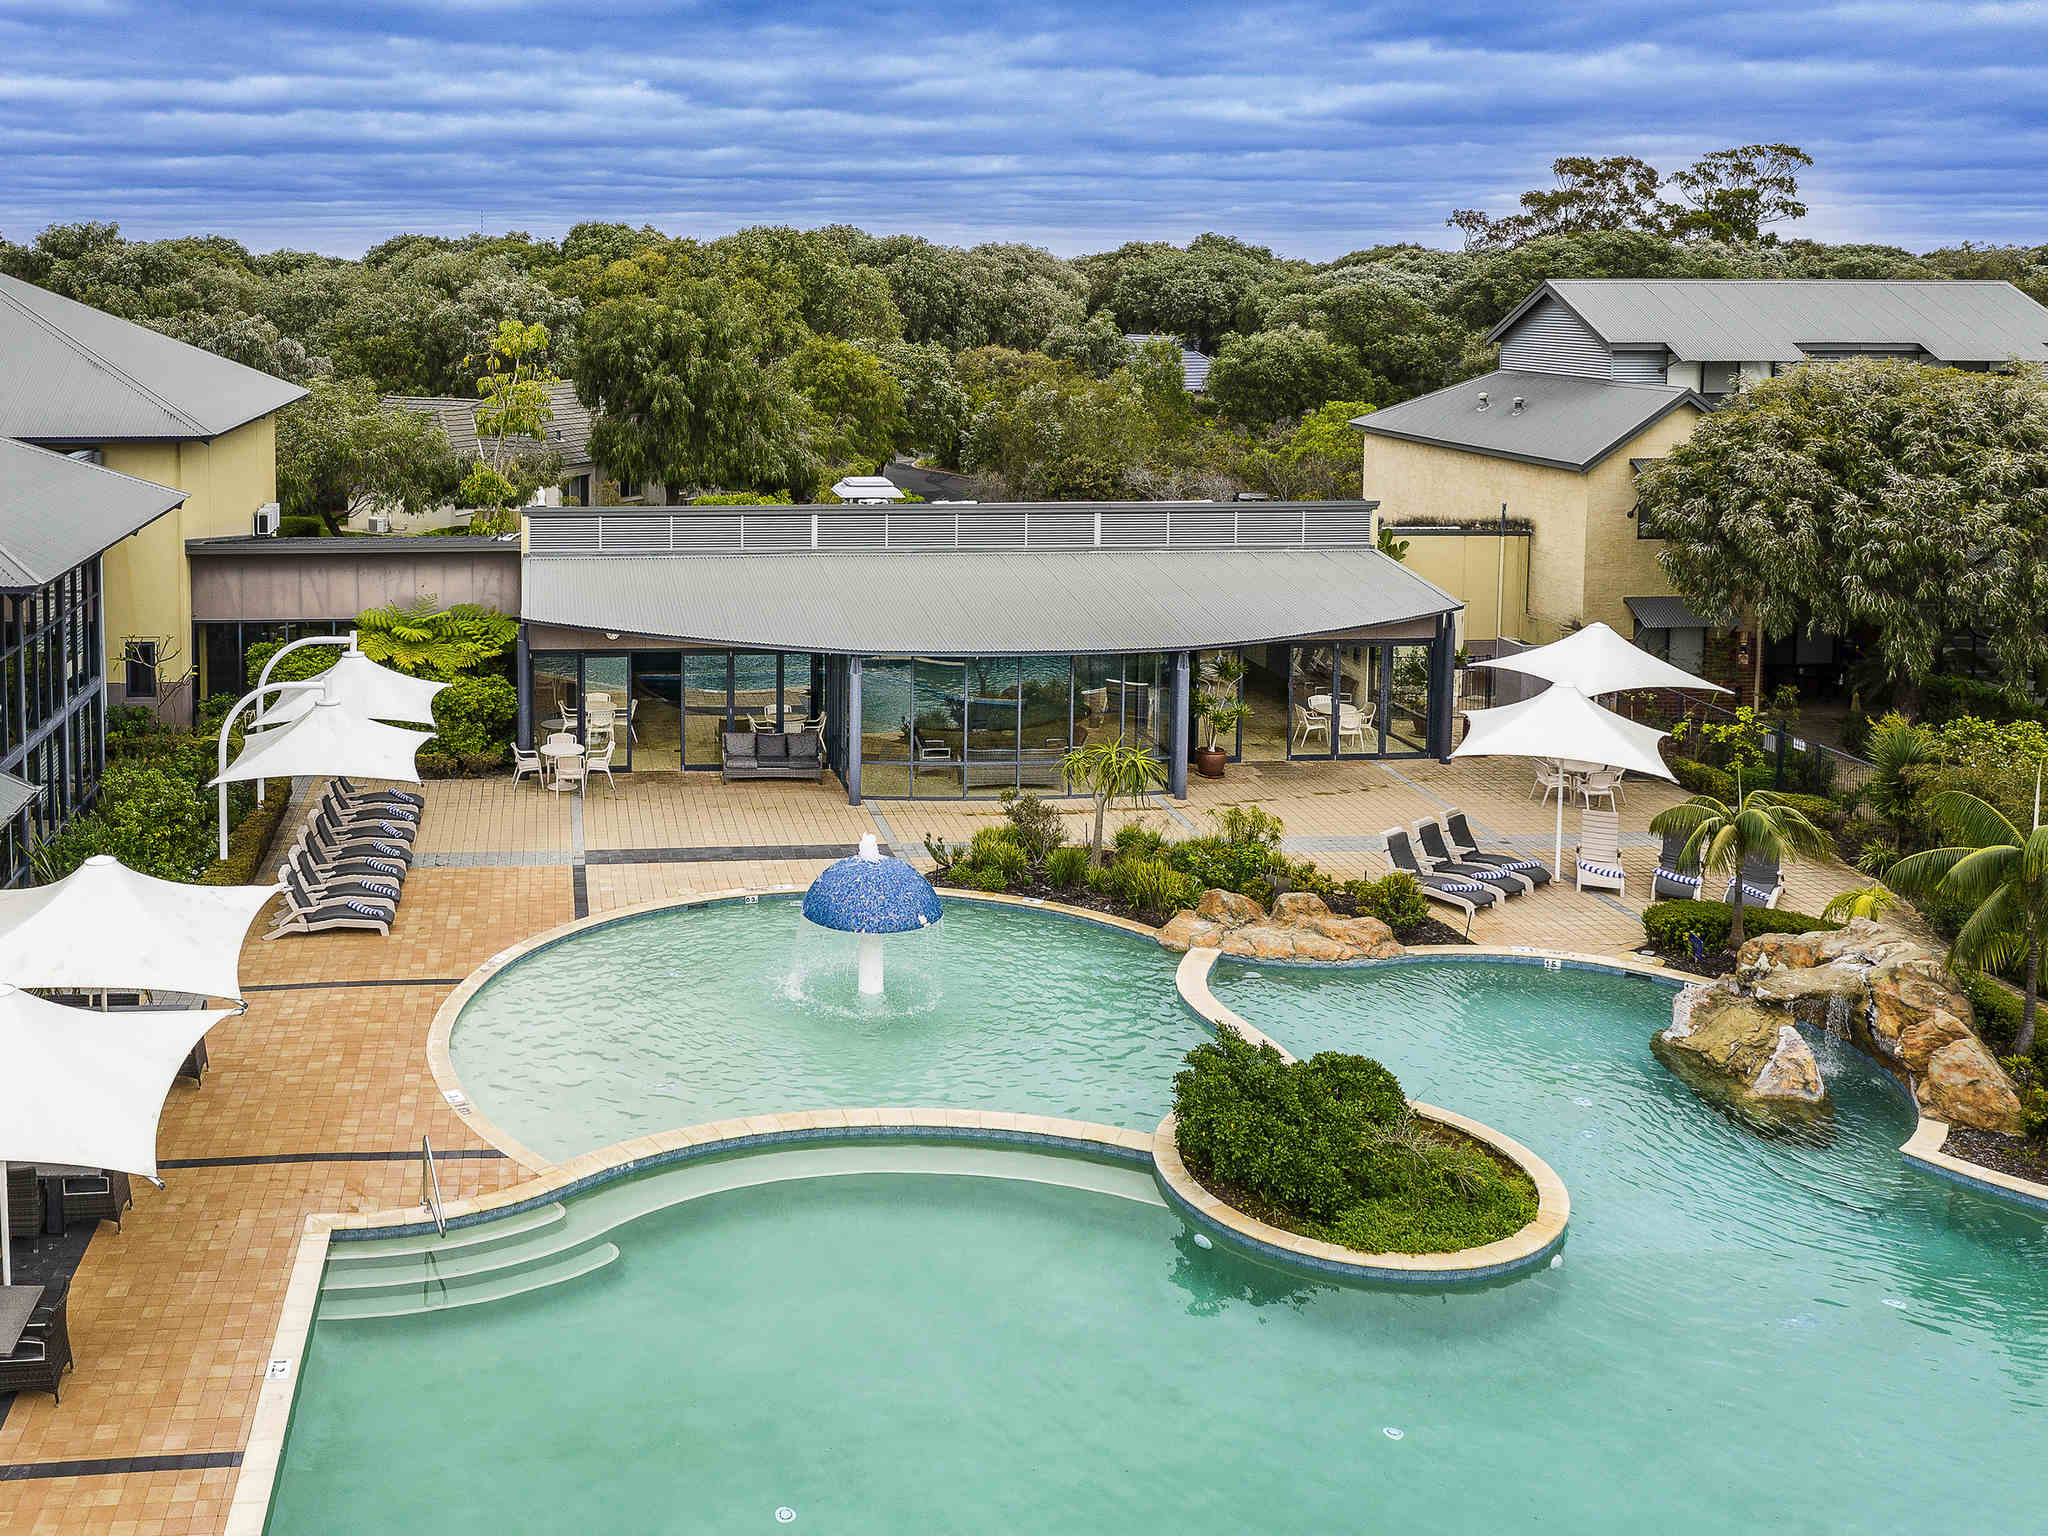 Hotel – The Sebel Busselton